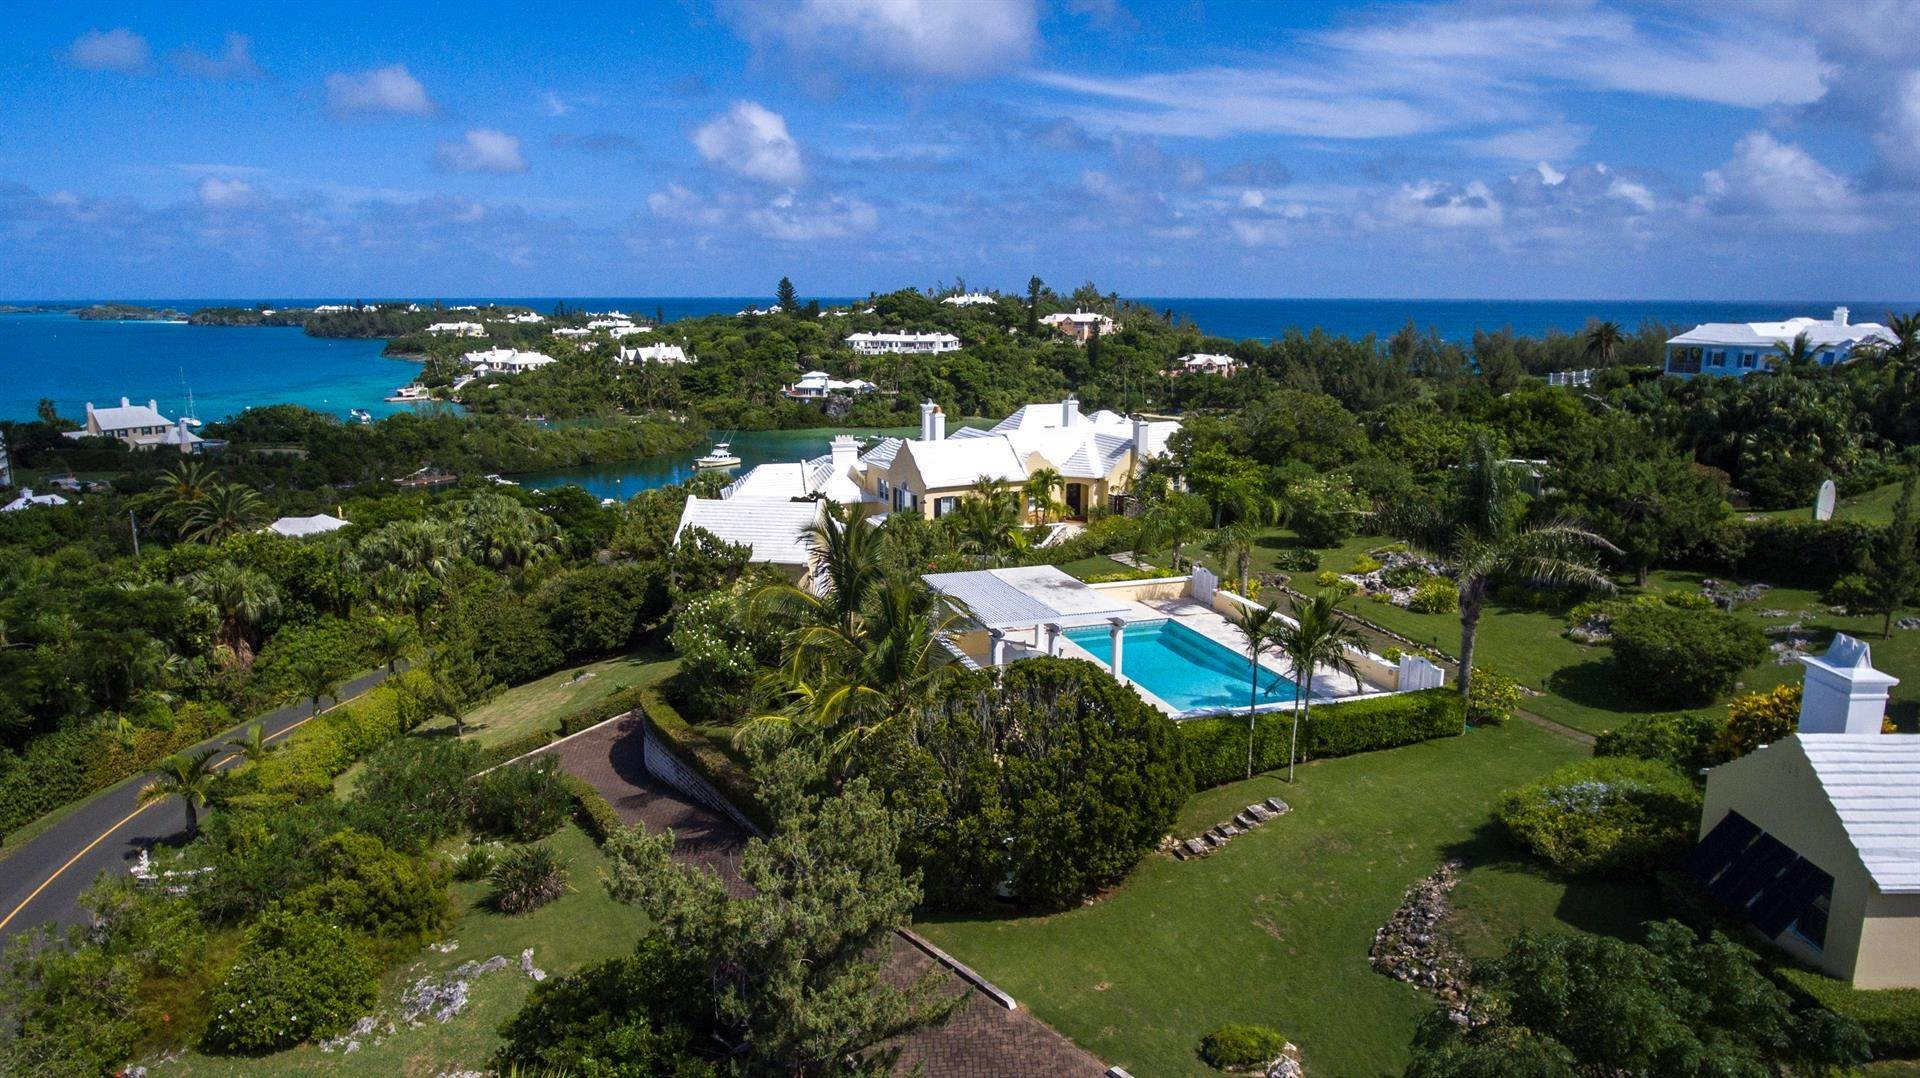 28. Gods för Försäljning vid Atlanta By The Sea In Tucker's Town Atlanta By The Sea In Tucker's Town, ,Bermuda – Sinclair Realty